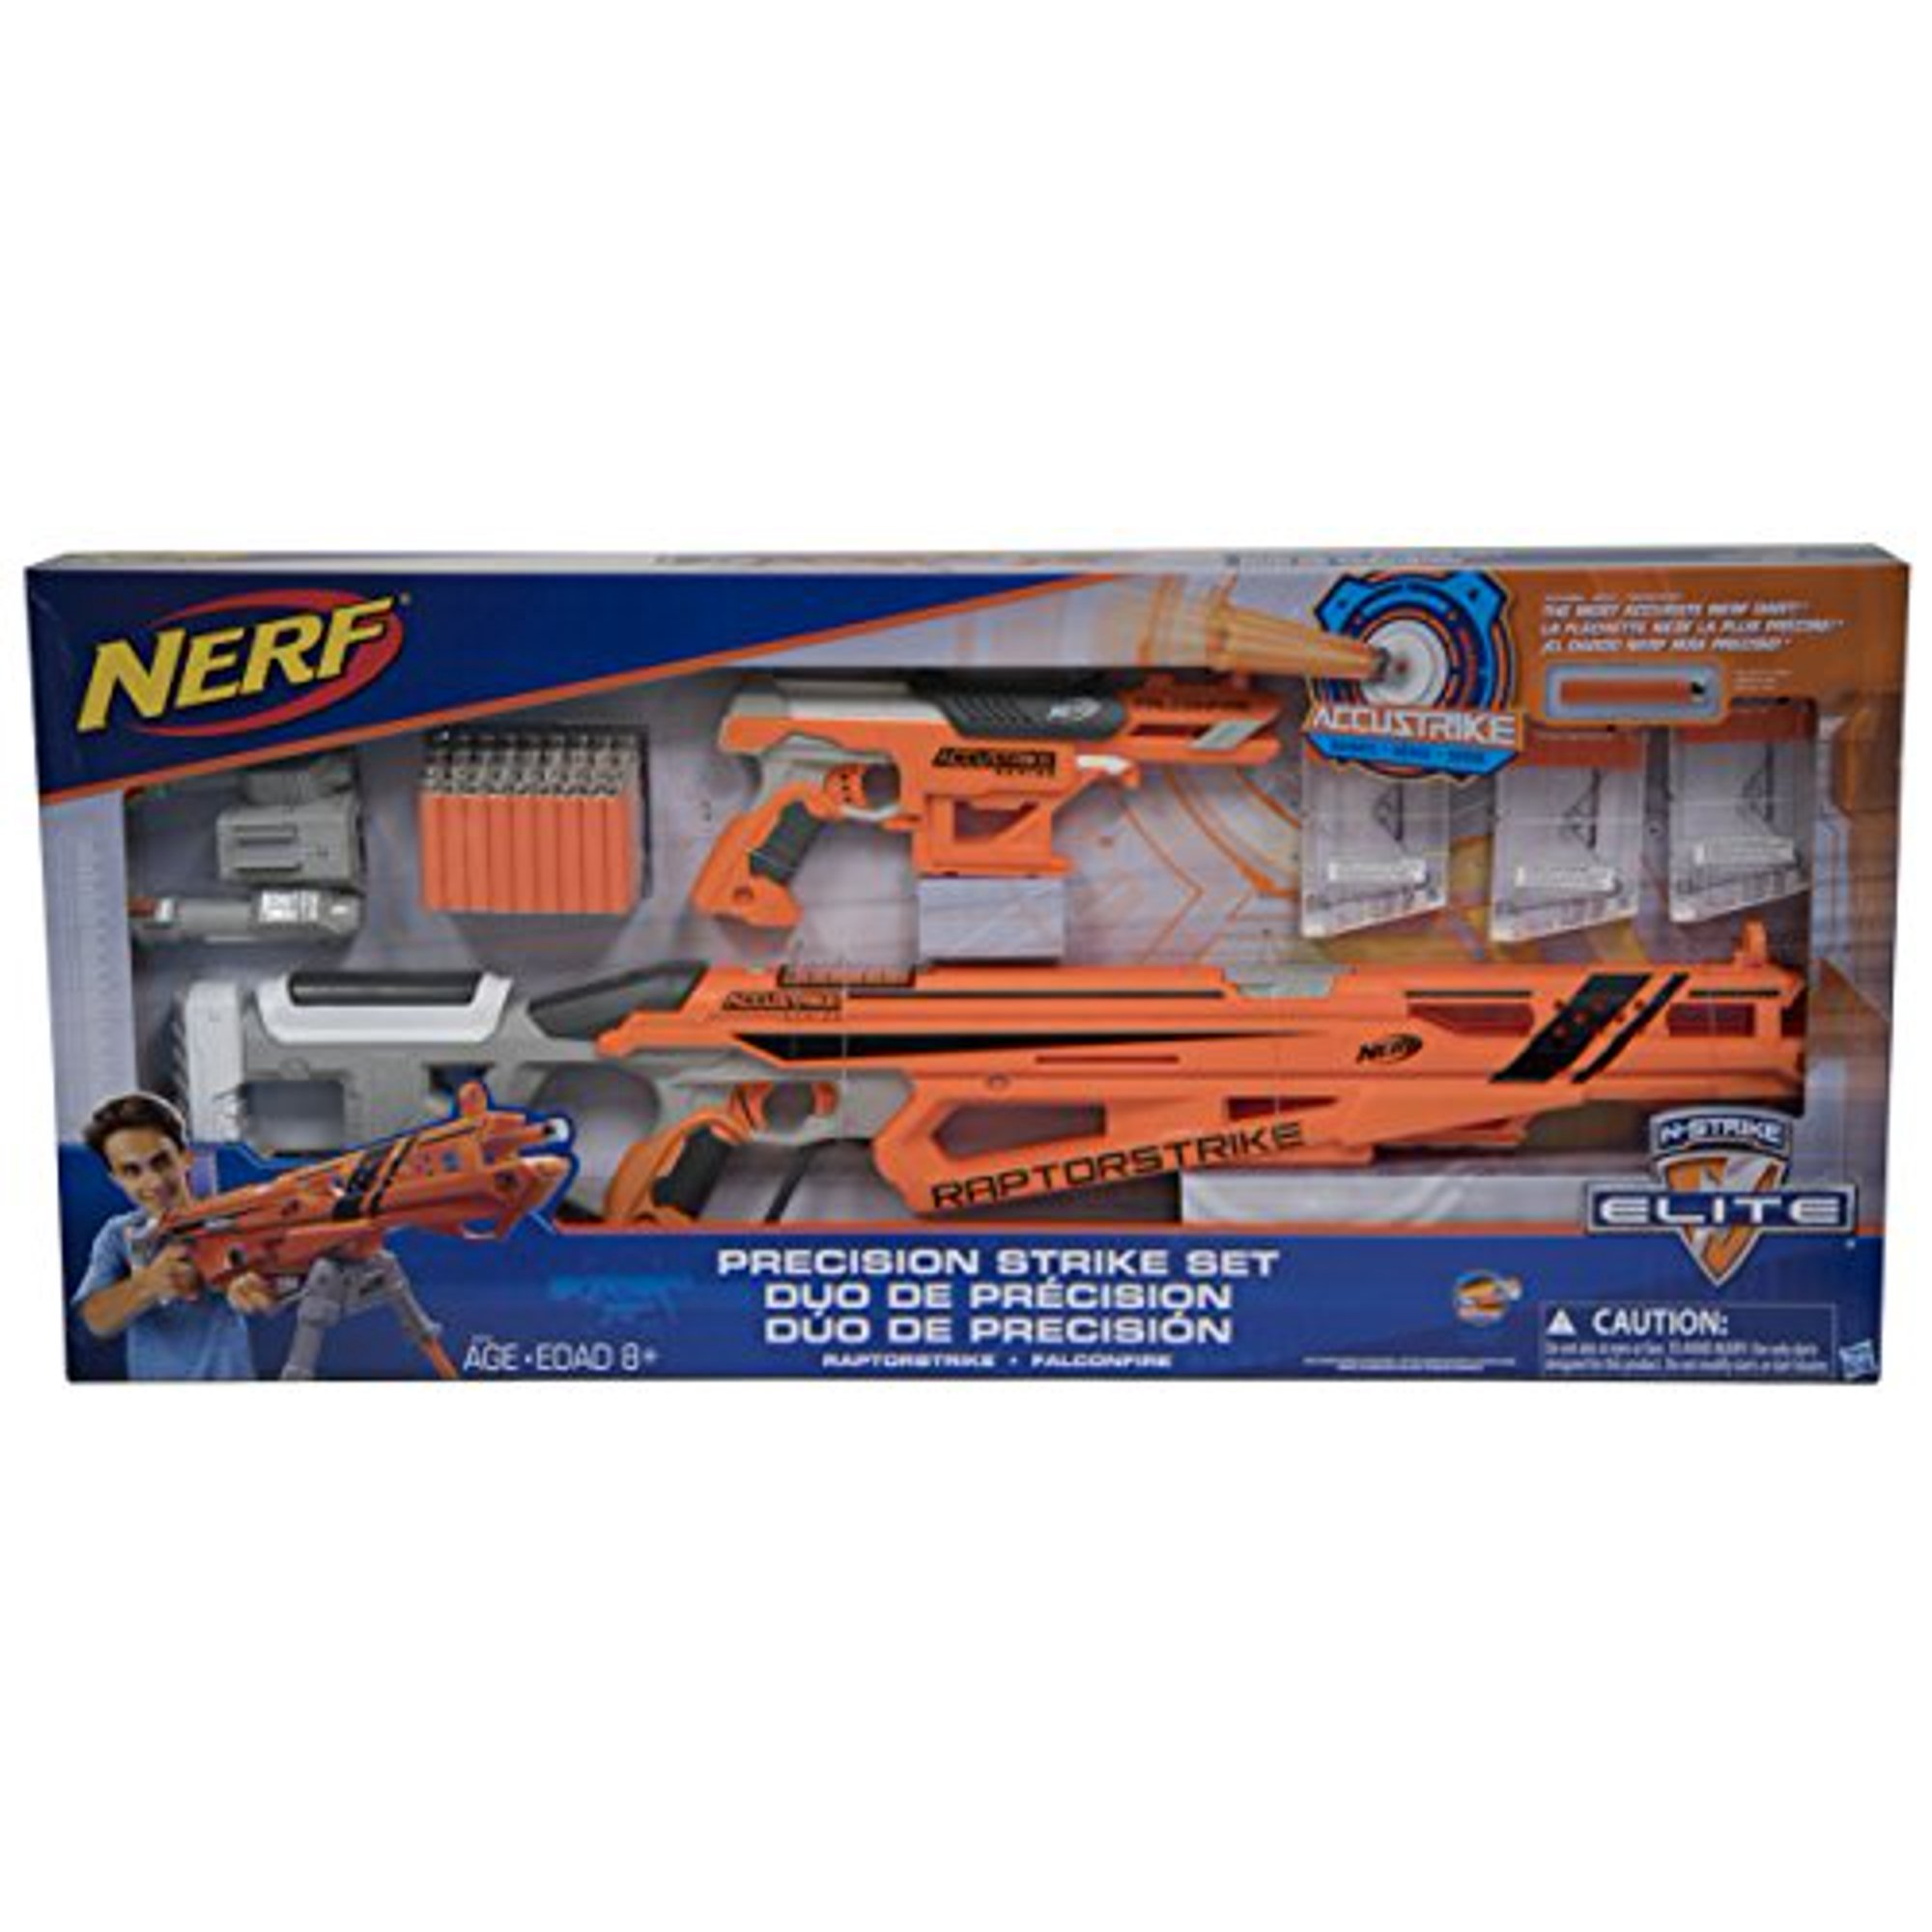 Nerf N-Strike Elite Precision Strike Set RaptorStrike and FalconFire  Blasters